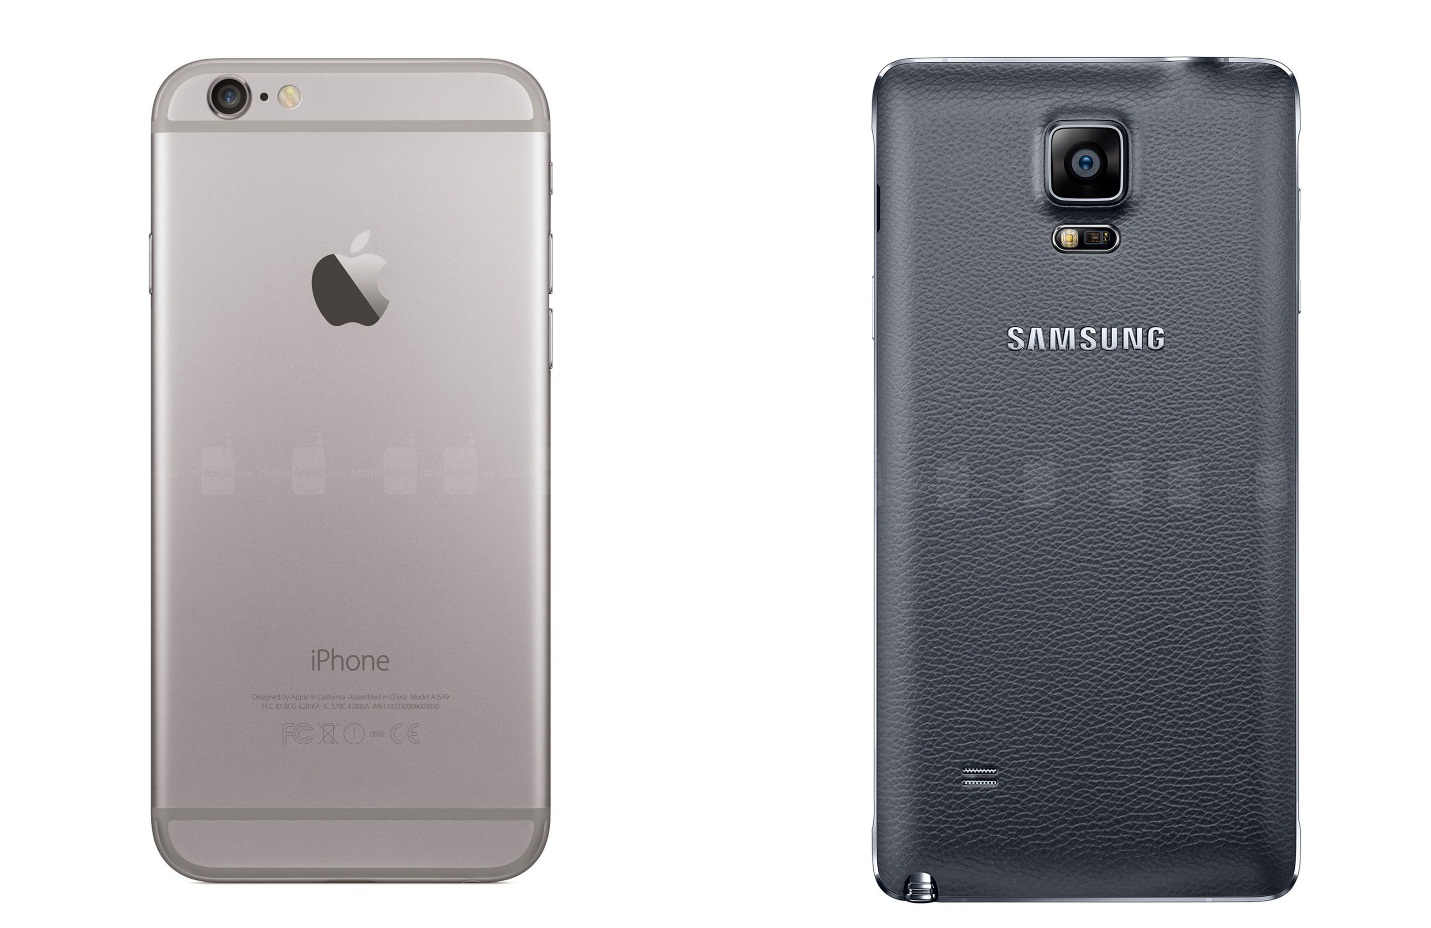 iPhone 6 và Galaxy Note 4